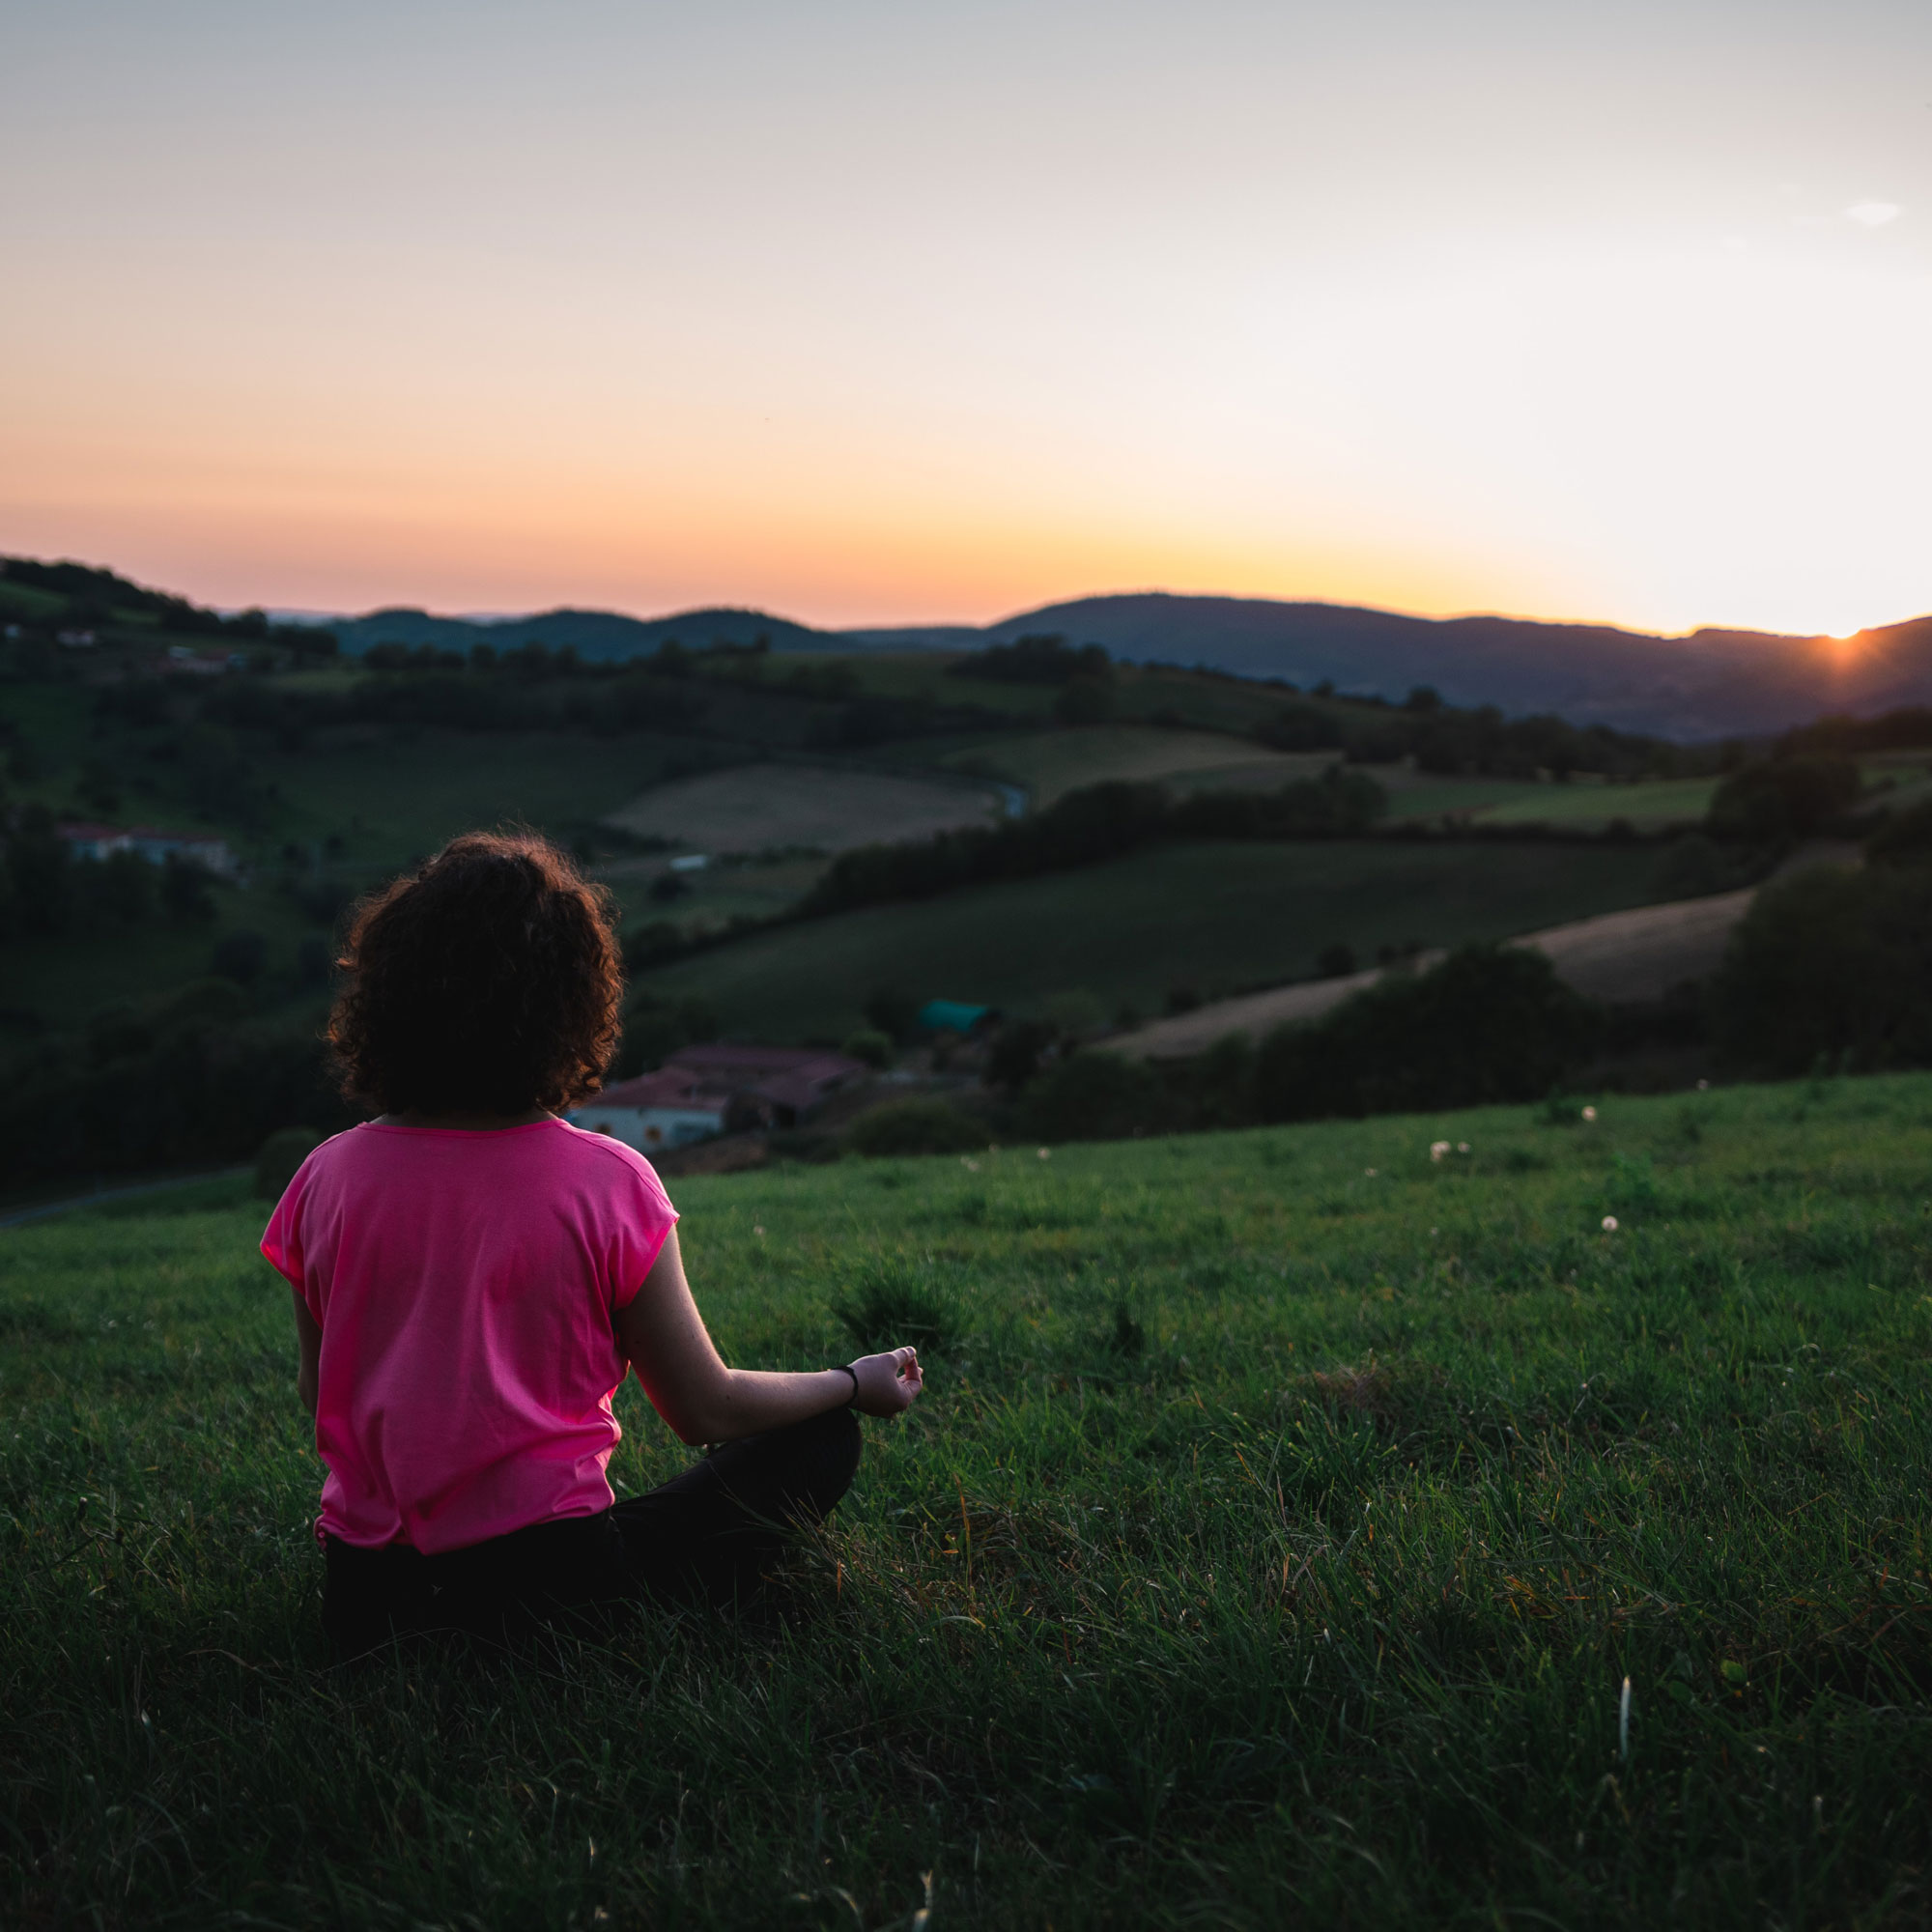 woman-meditating-field-hills